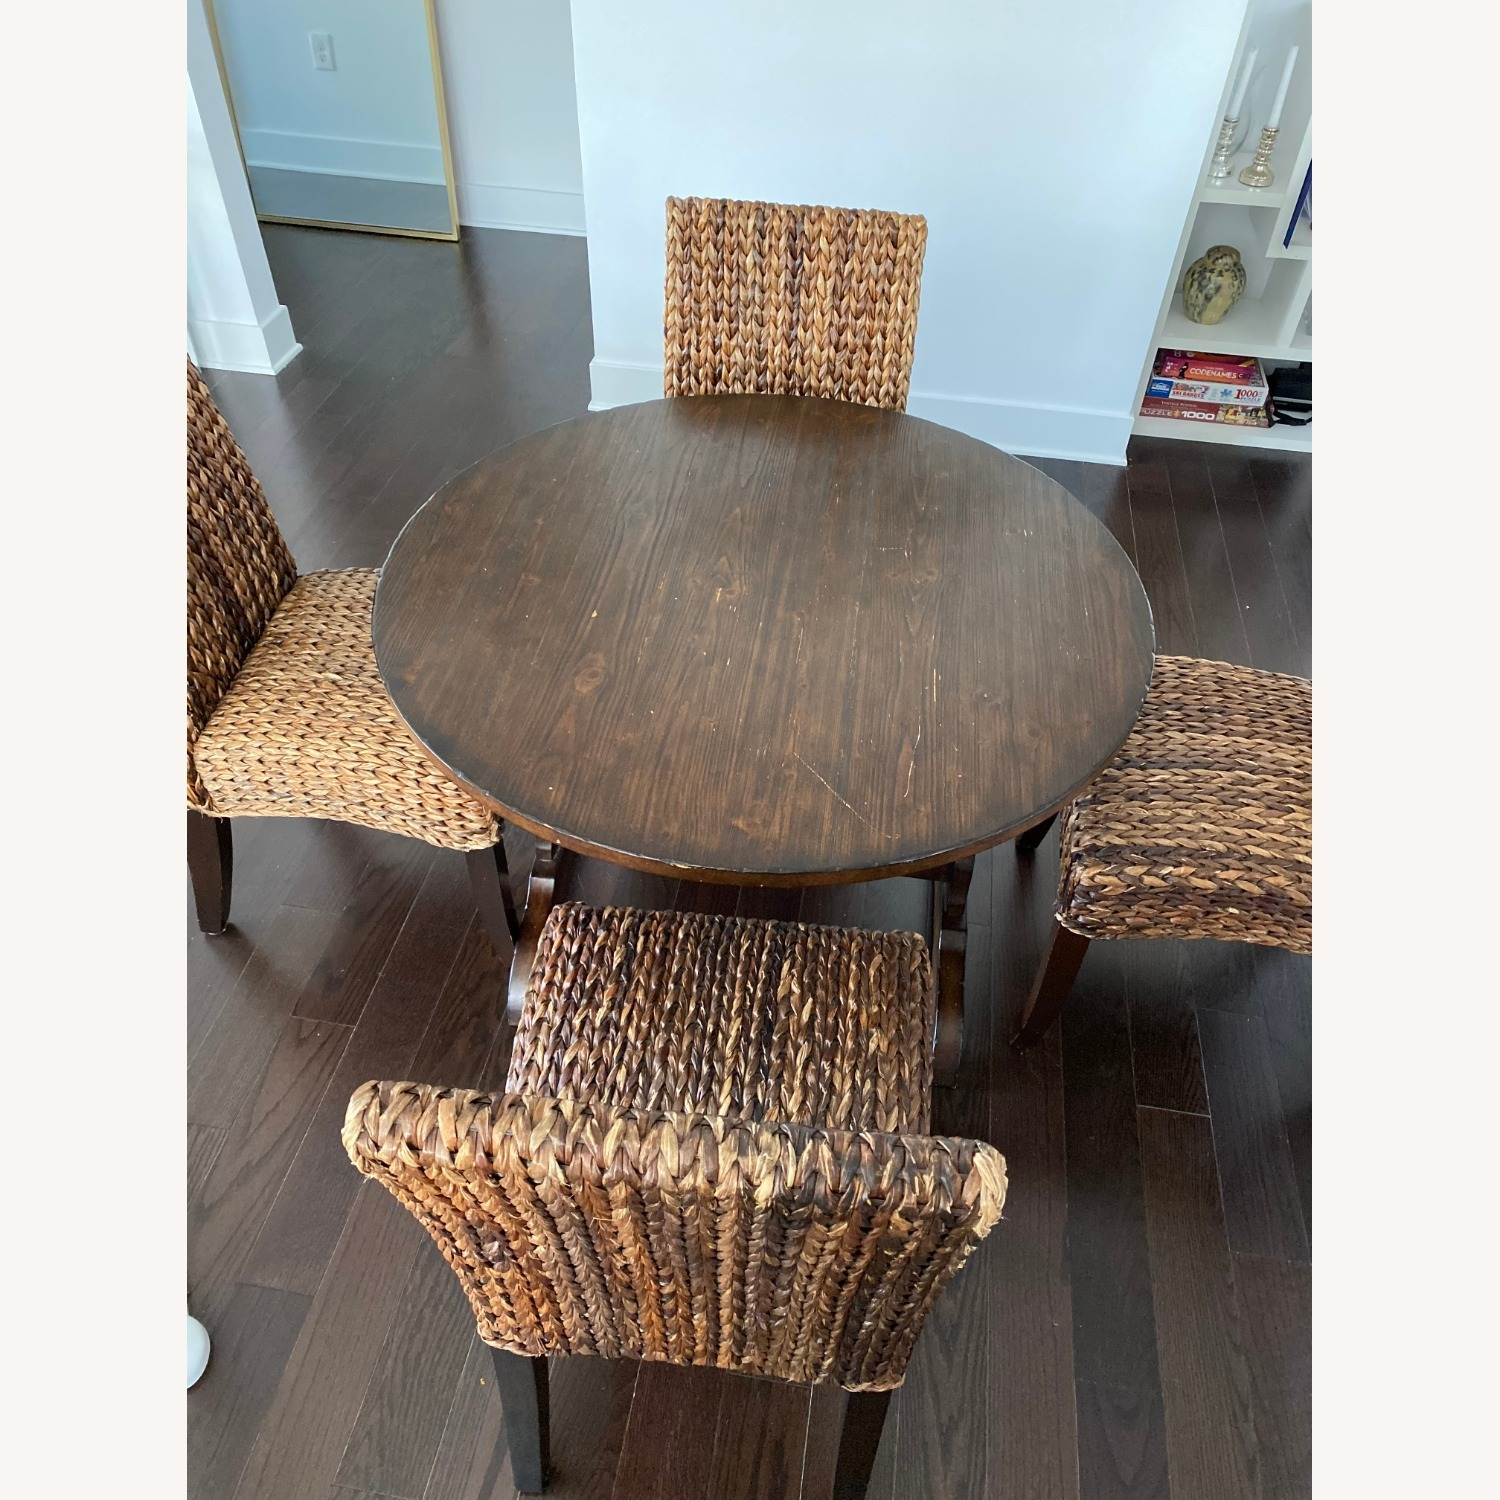 Pottery Barn Dining Table and Seagrass Chair Set - image-6